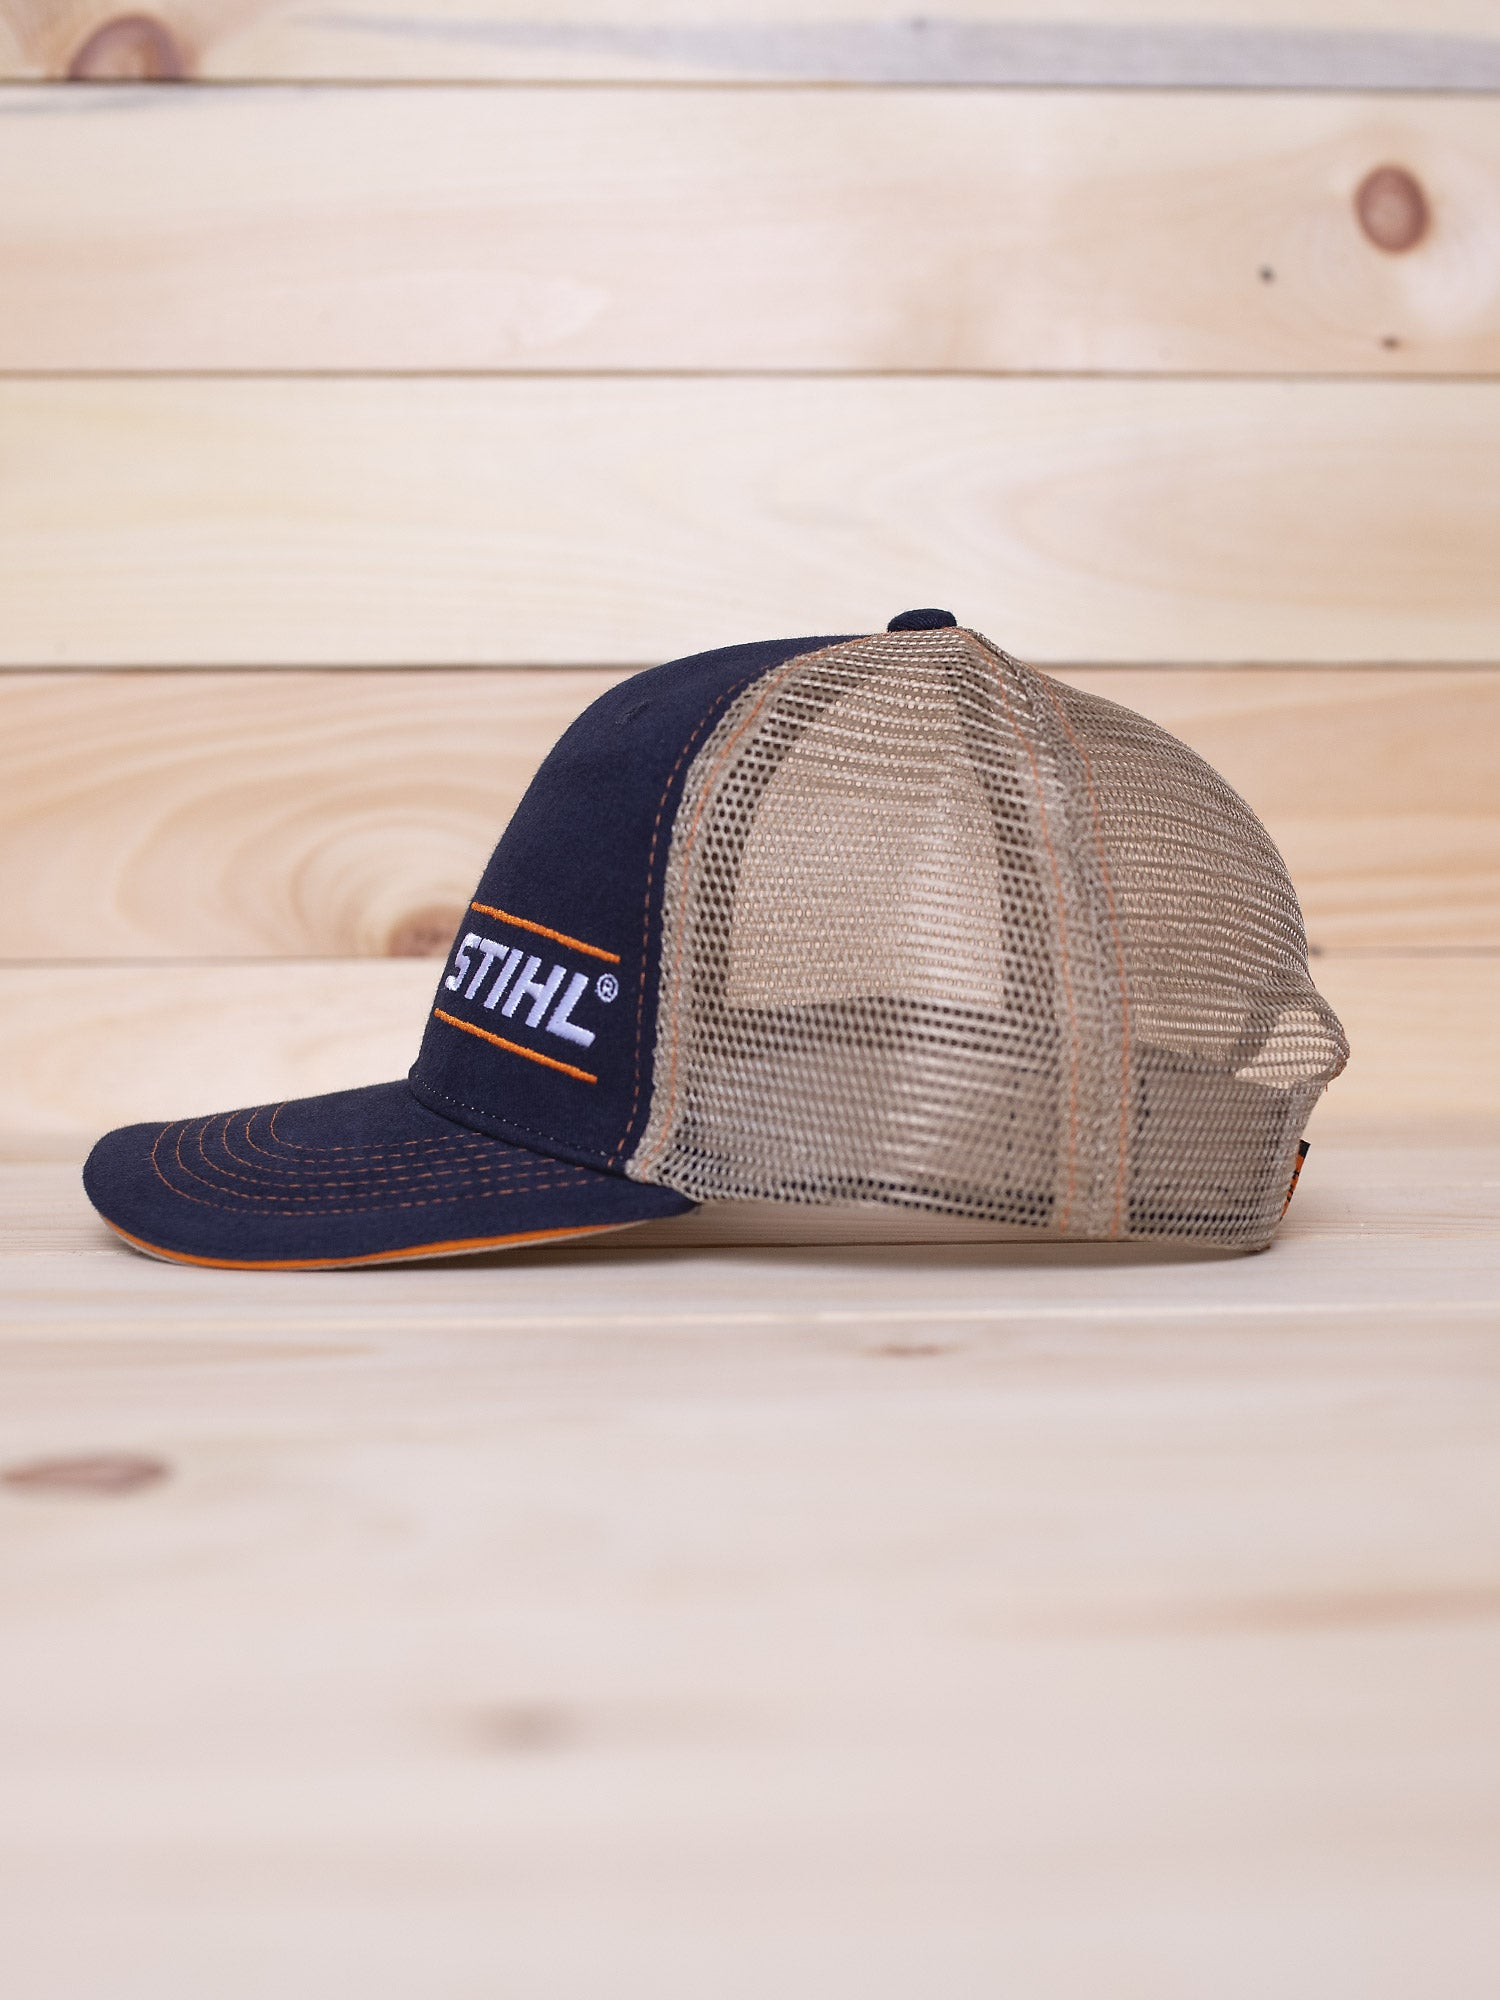 STIHL Navy Mesh Back Hat